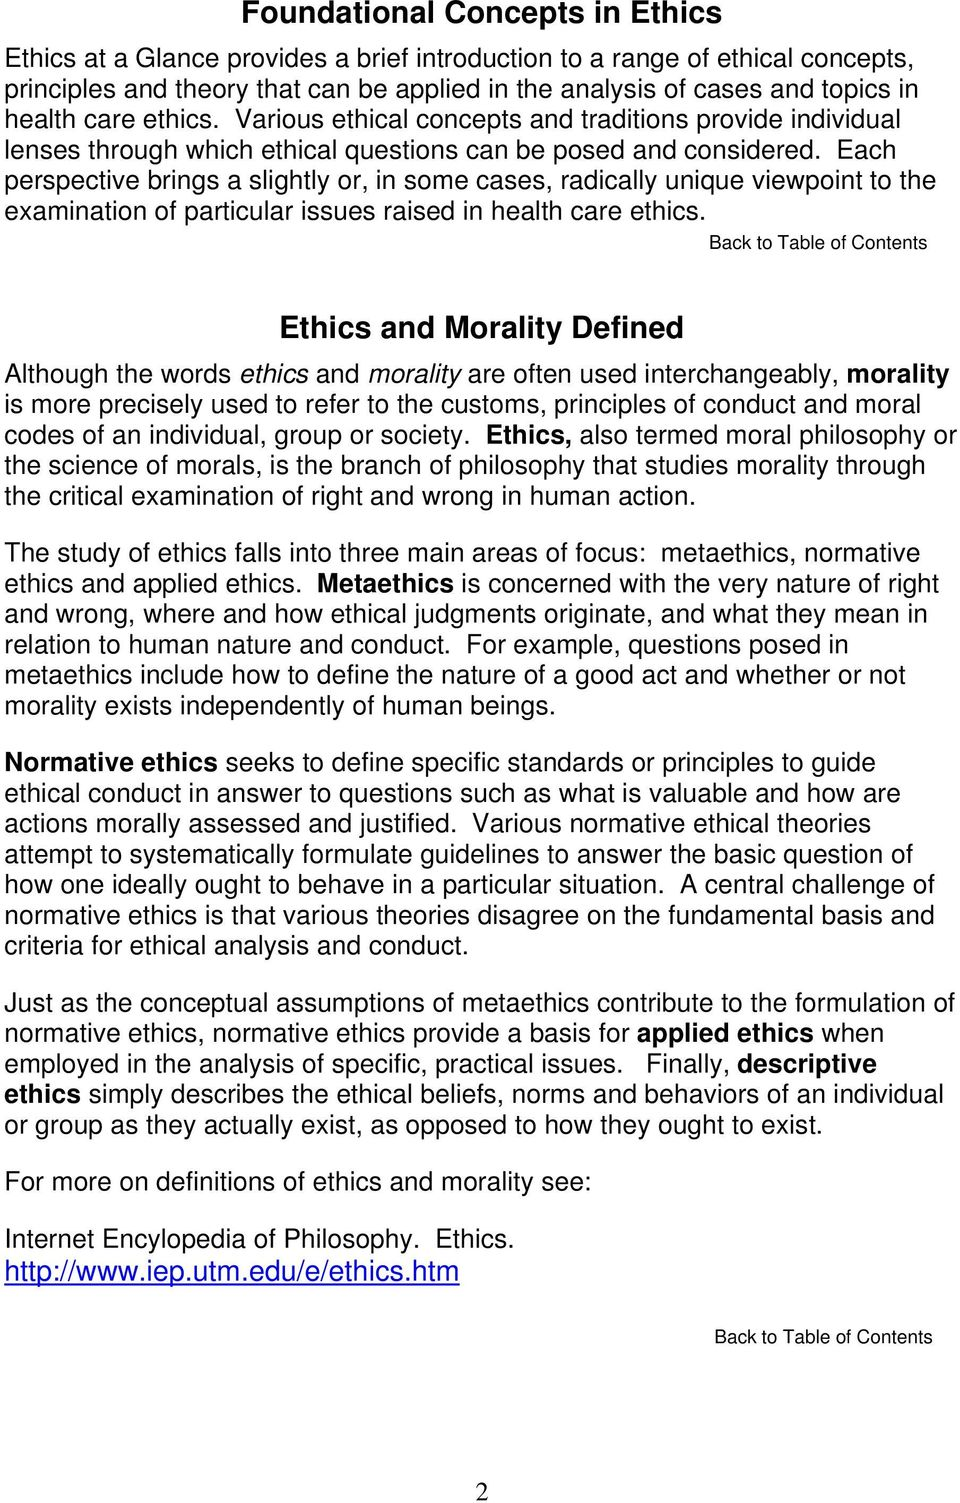 Each perspective brings a slightly or, in some cases, radically unique viewpoint to the examination of particular issues raised in health care ethics.